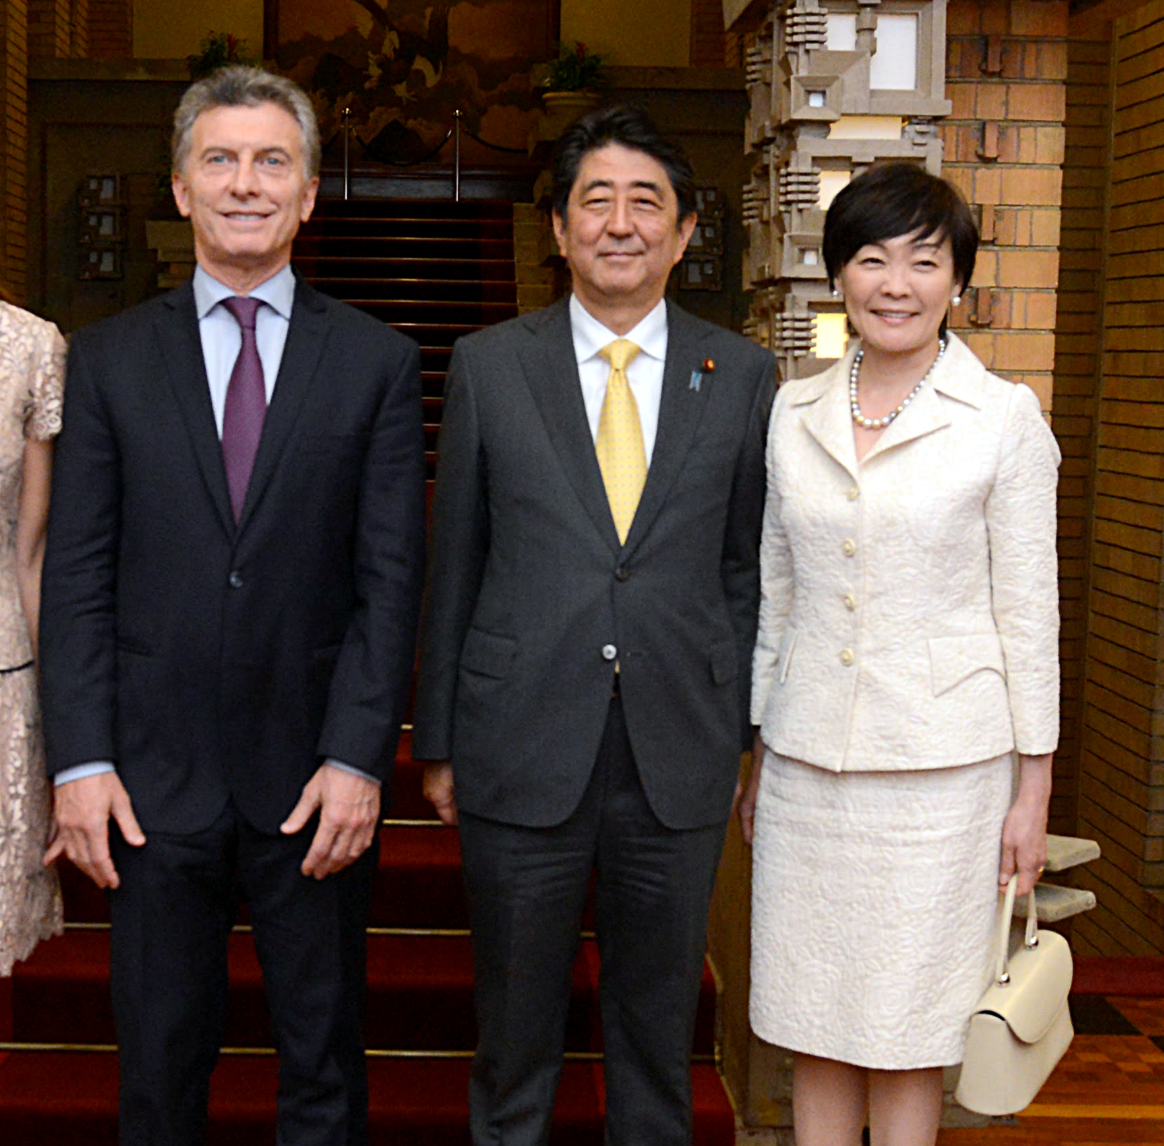 ¿Cuánto mide Mauricio Macri? - Altura - Real height Mauricio_Macri_Shinzo_Abe_and_Akie_Abe_cropped_Juliana_Awada_Mauricio_Macri_Shinzo_Abe_and_Akie_Abe_20170519